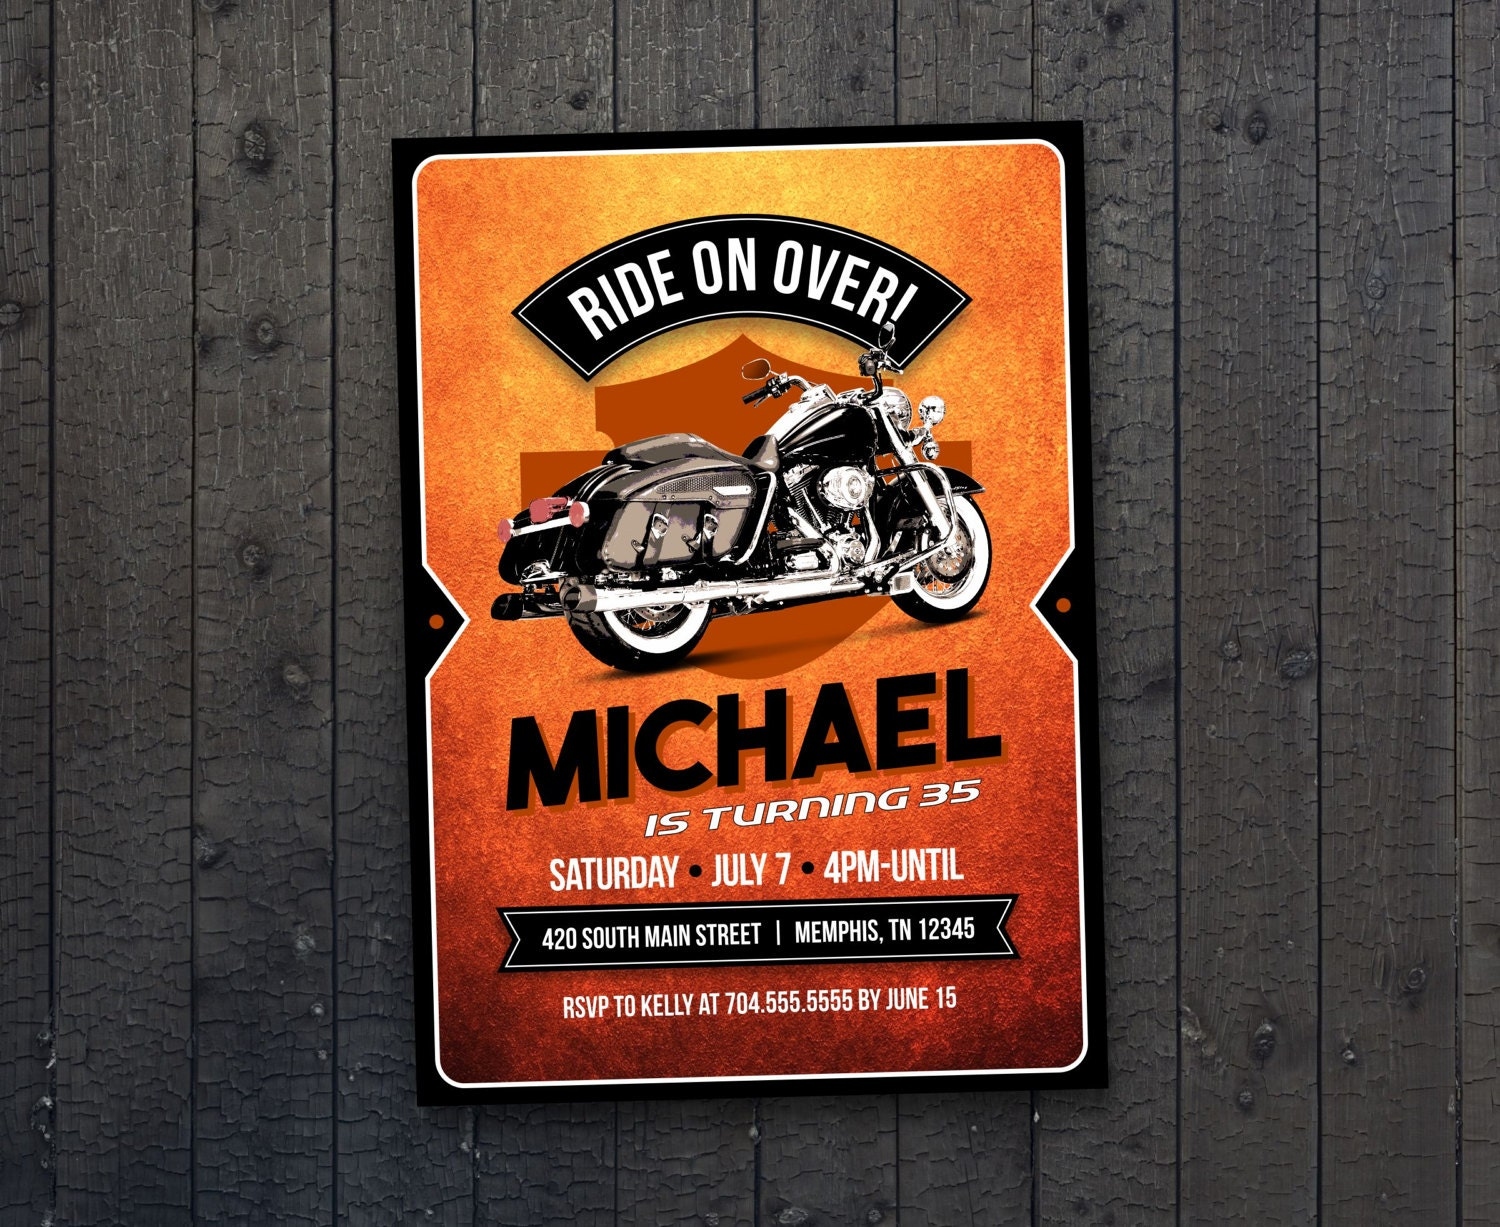 Motorcycle biker birthday invitation vintage motorcycle birthday motorcycle biker birthday invitation vintage motorcycle birthday motorcycle invite harley davidson birthday filmwisefo Image collections